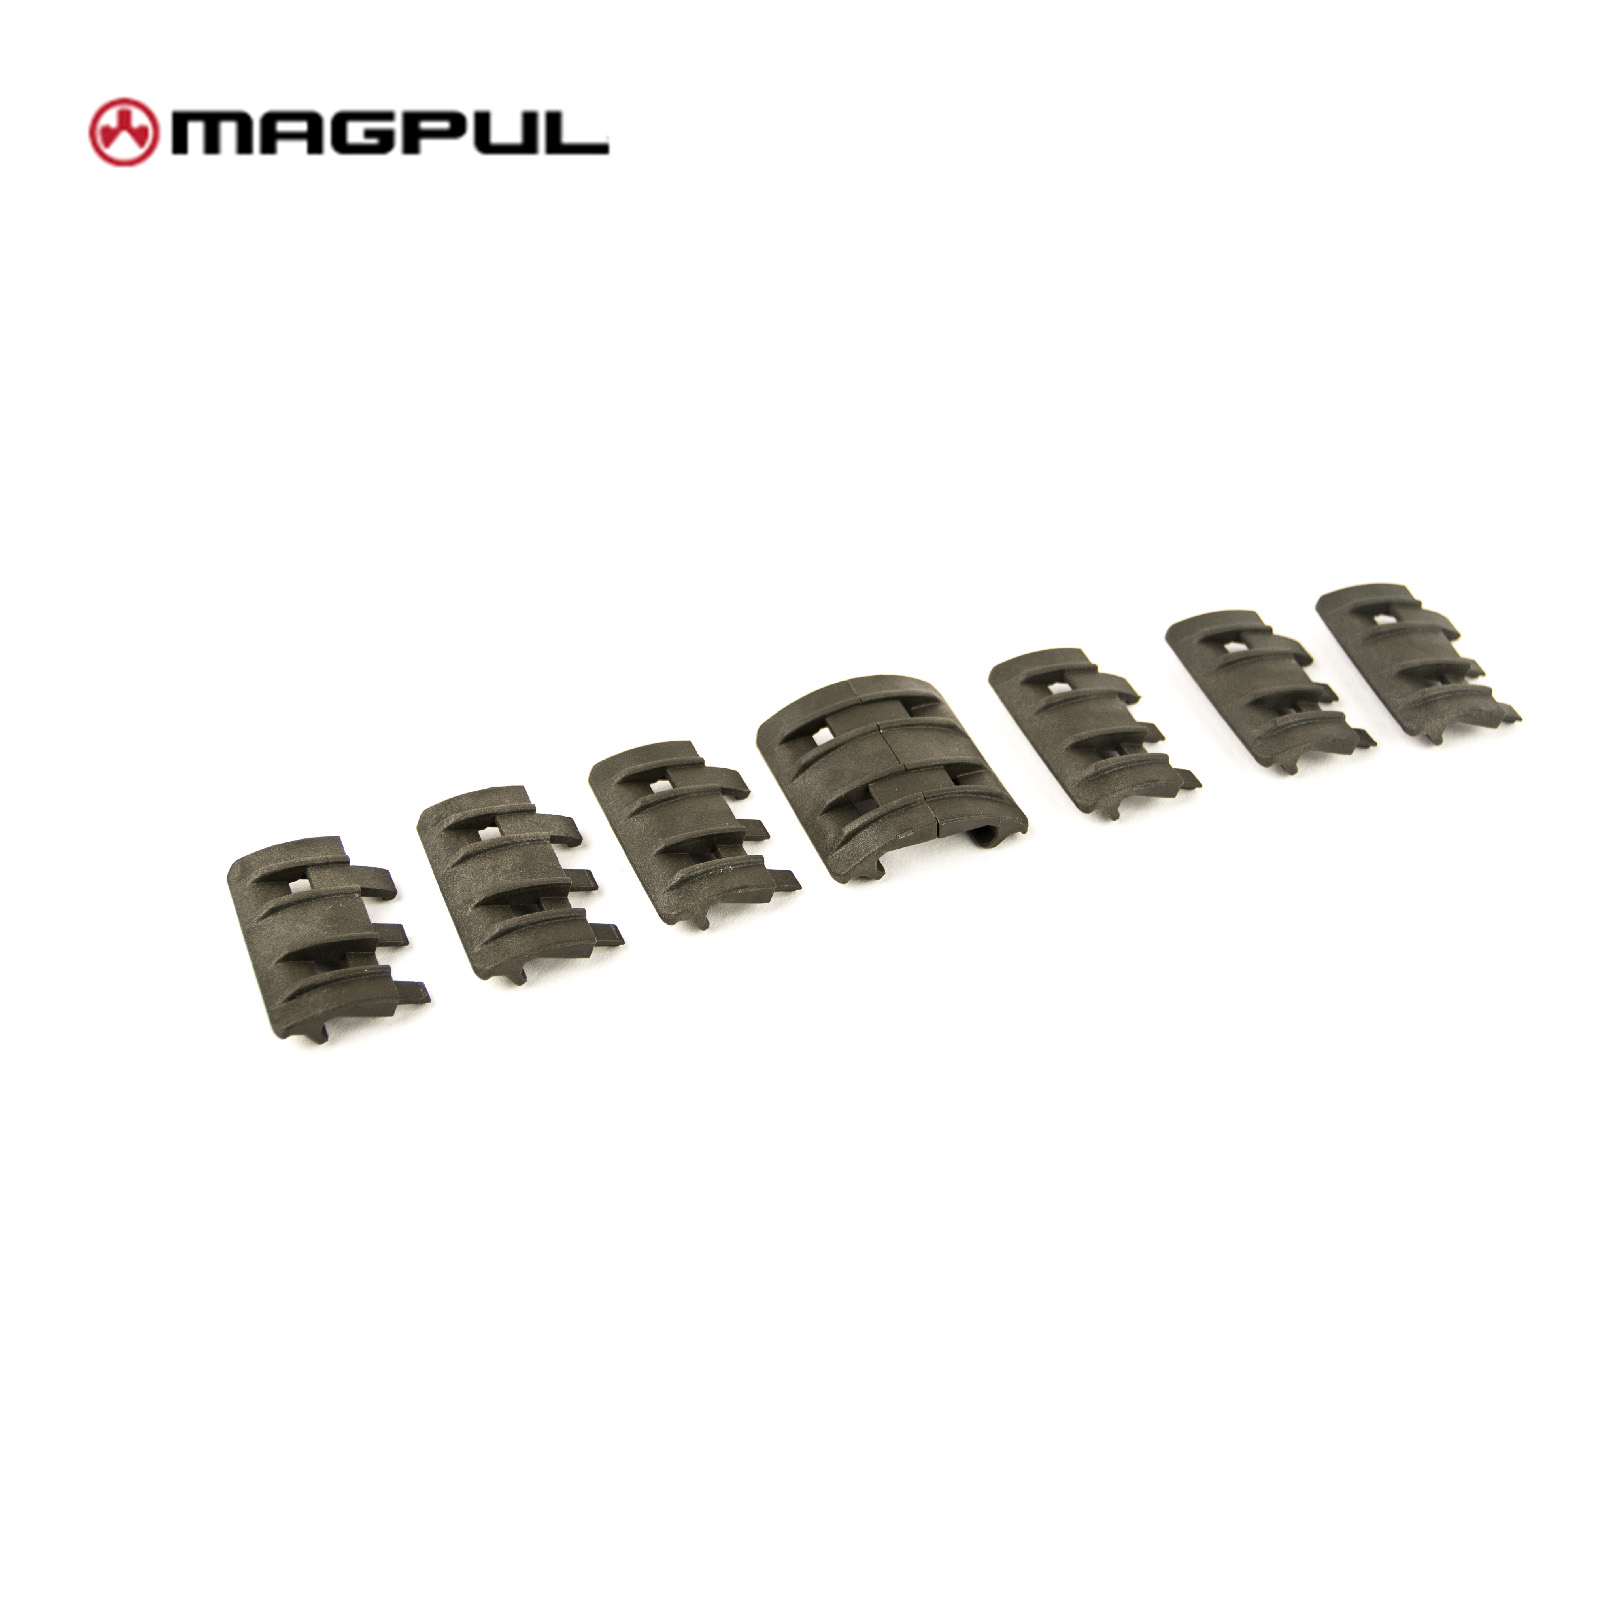 XTM Rail Covers (pack of 8) Olive Drab MAGPUL PTS